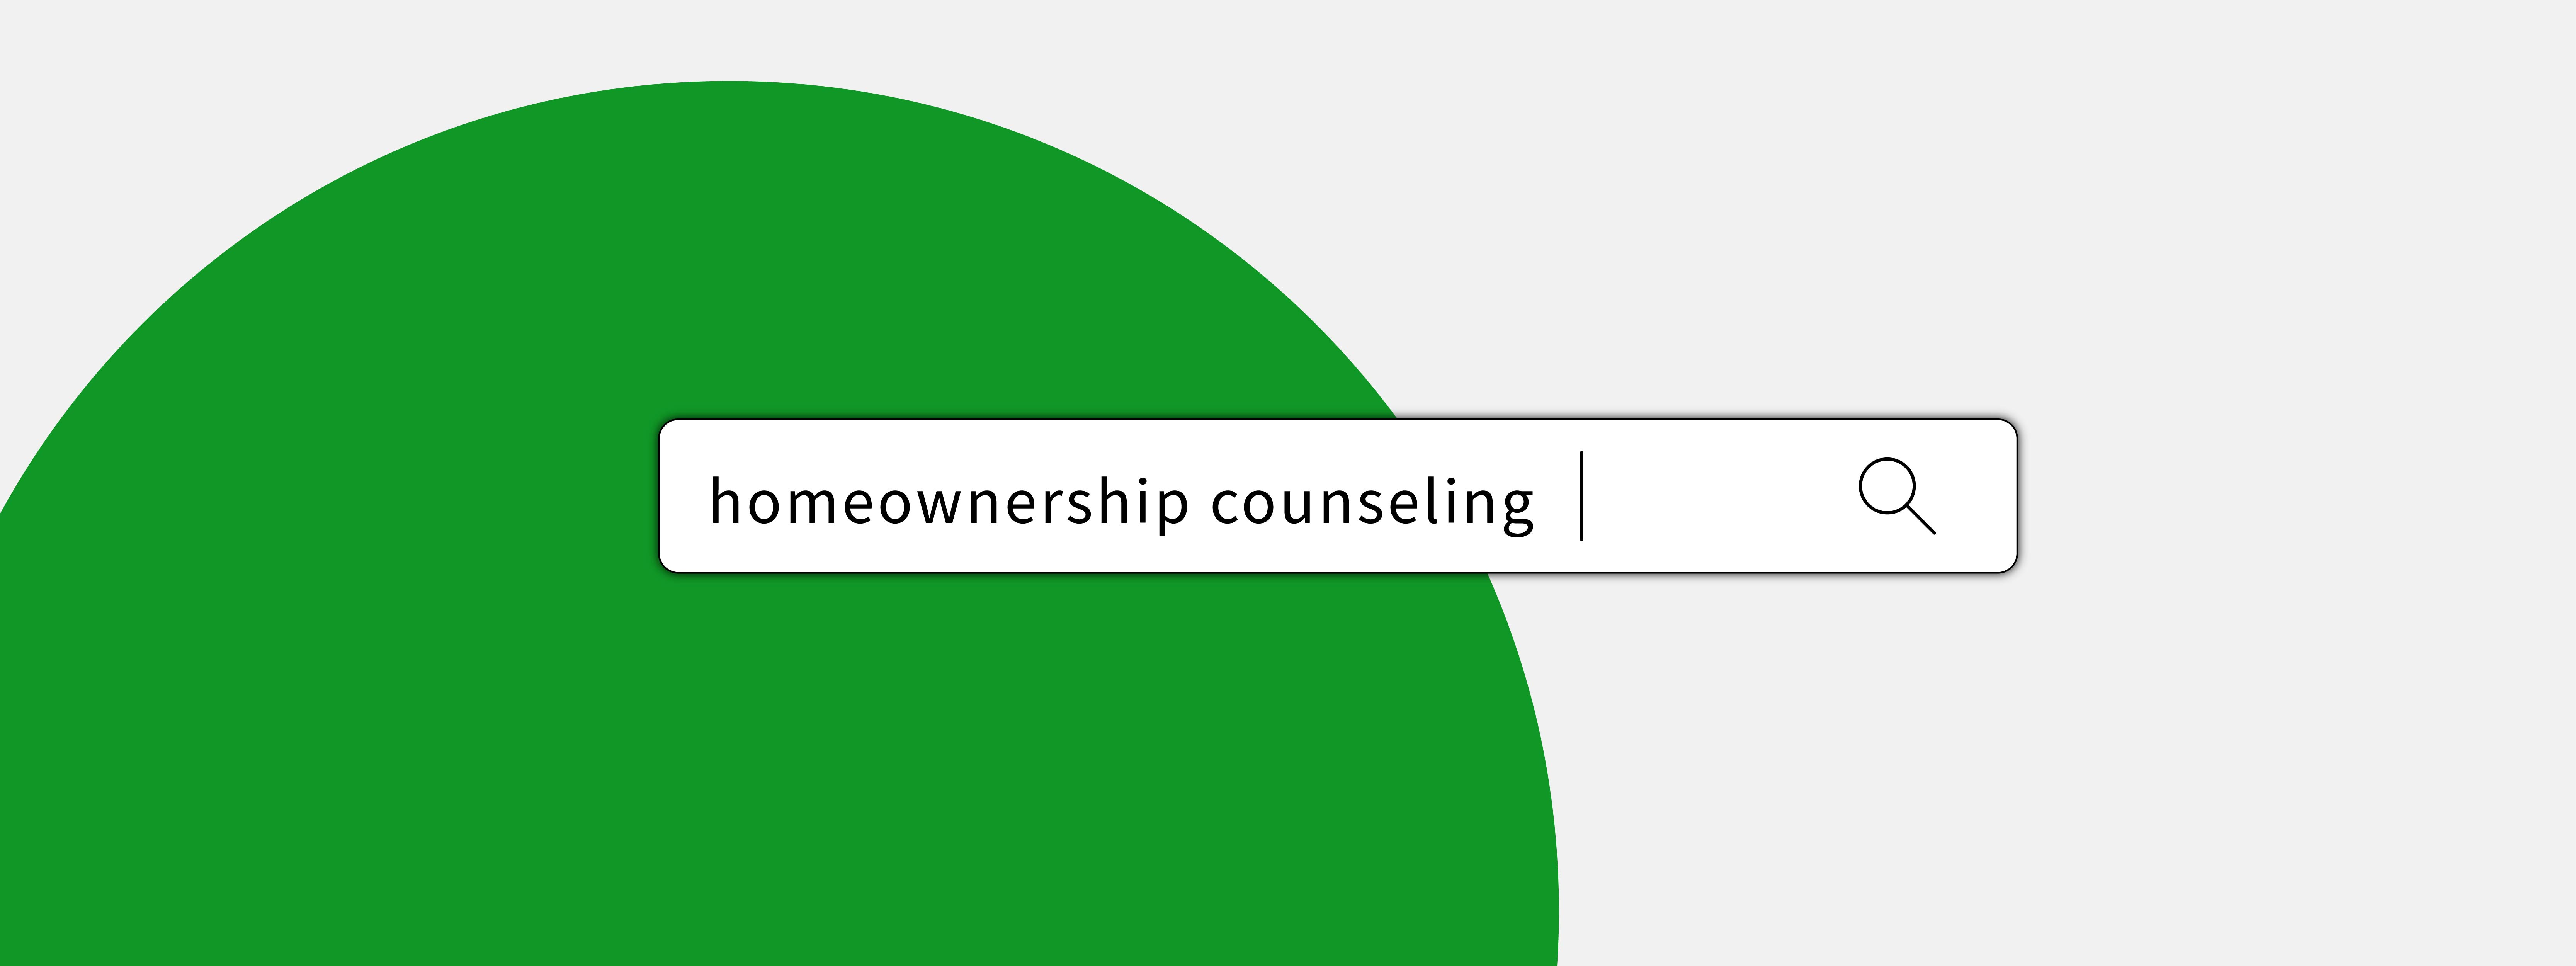 What is homeownership counseling?